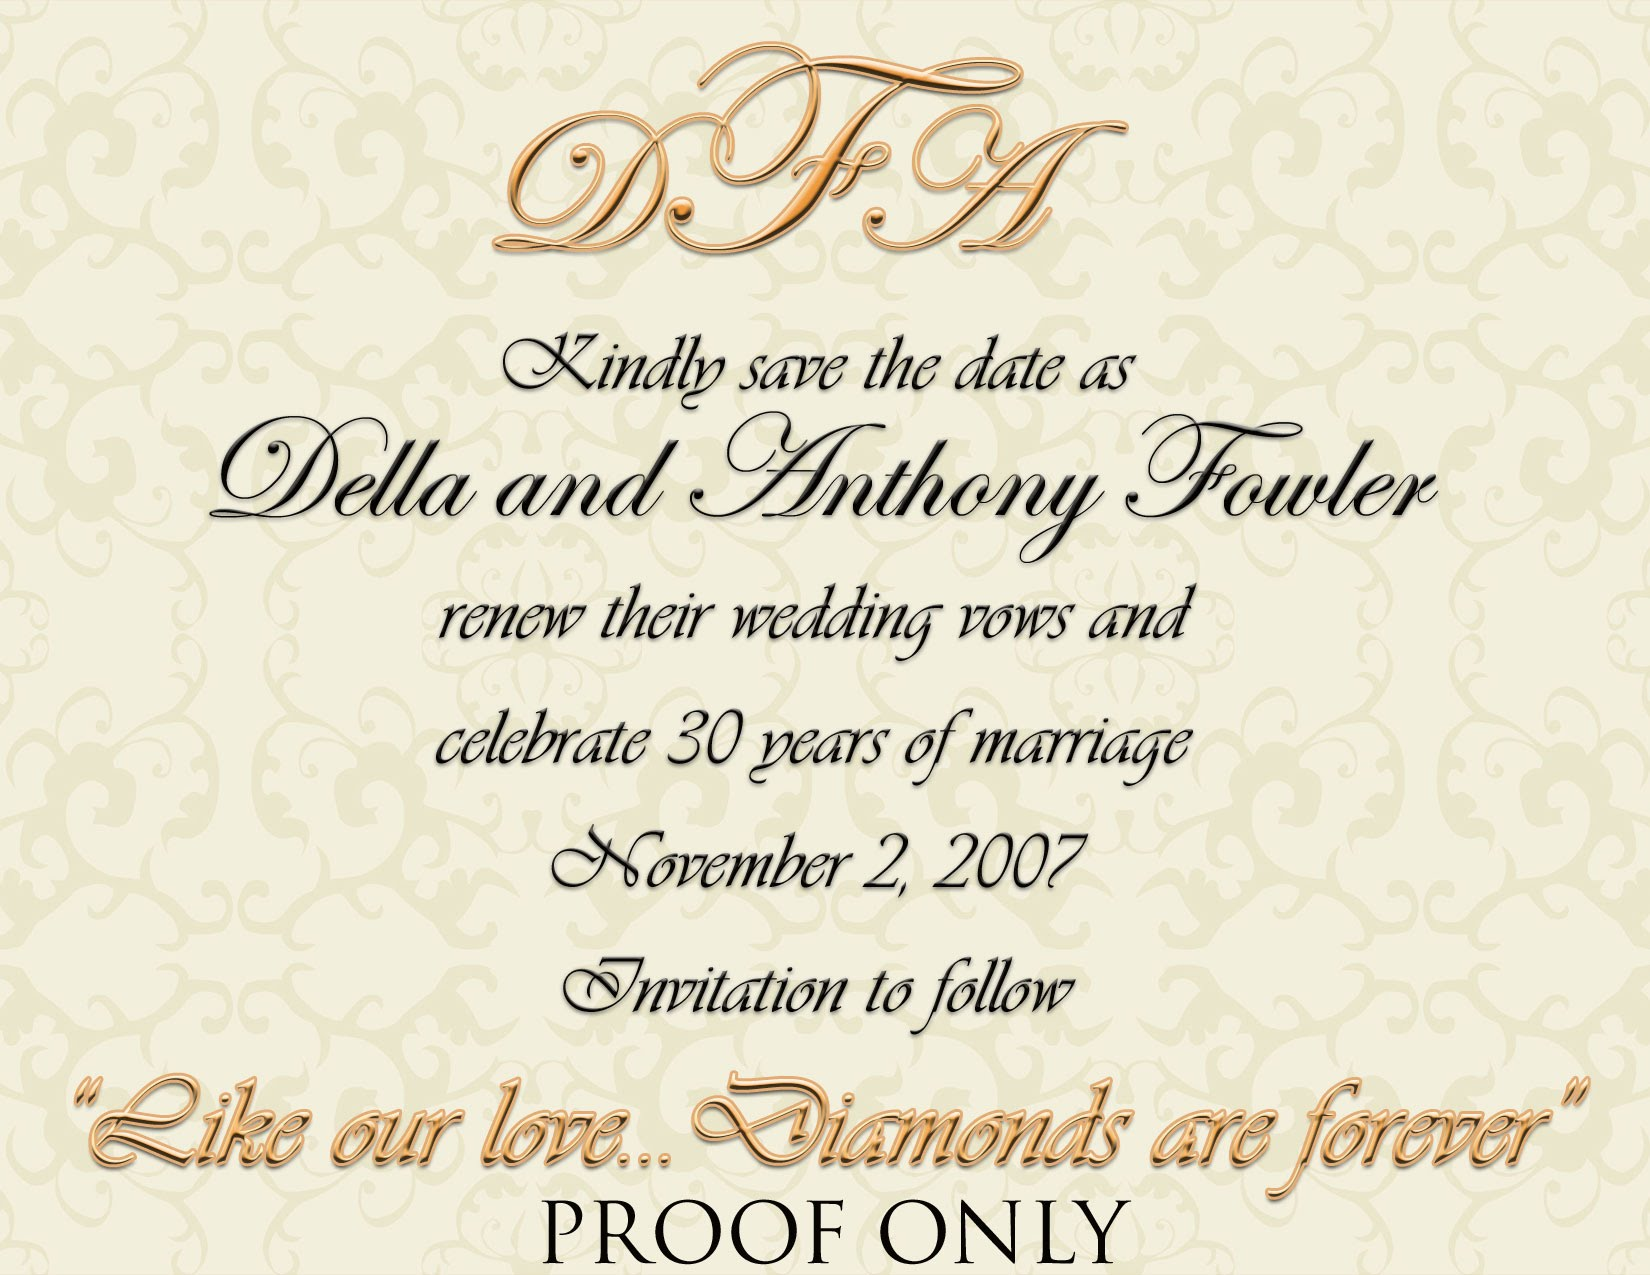 Renewing Wedding Vows Invitations as best invitations sample